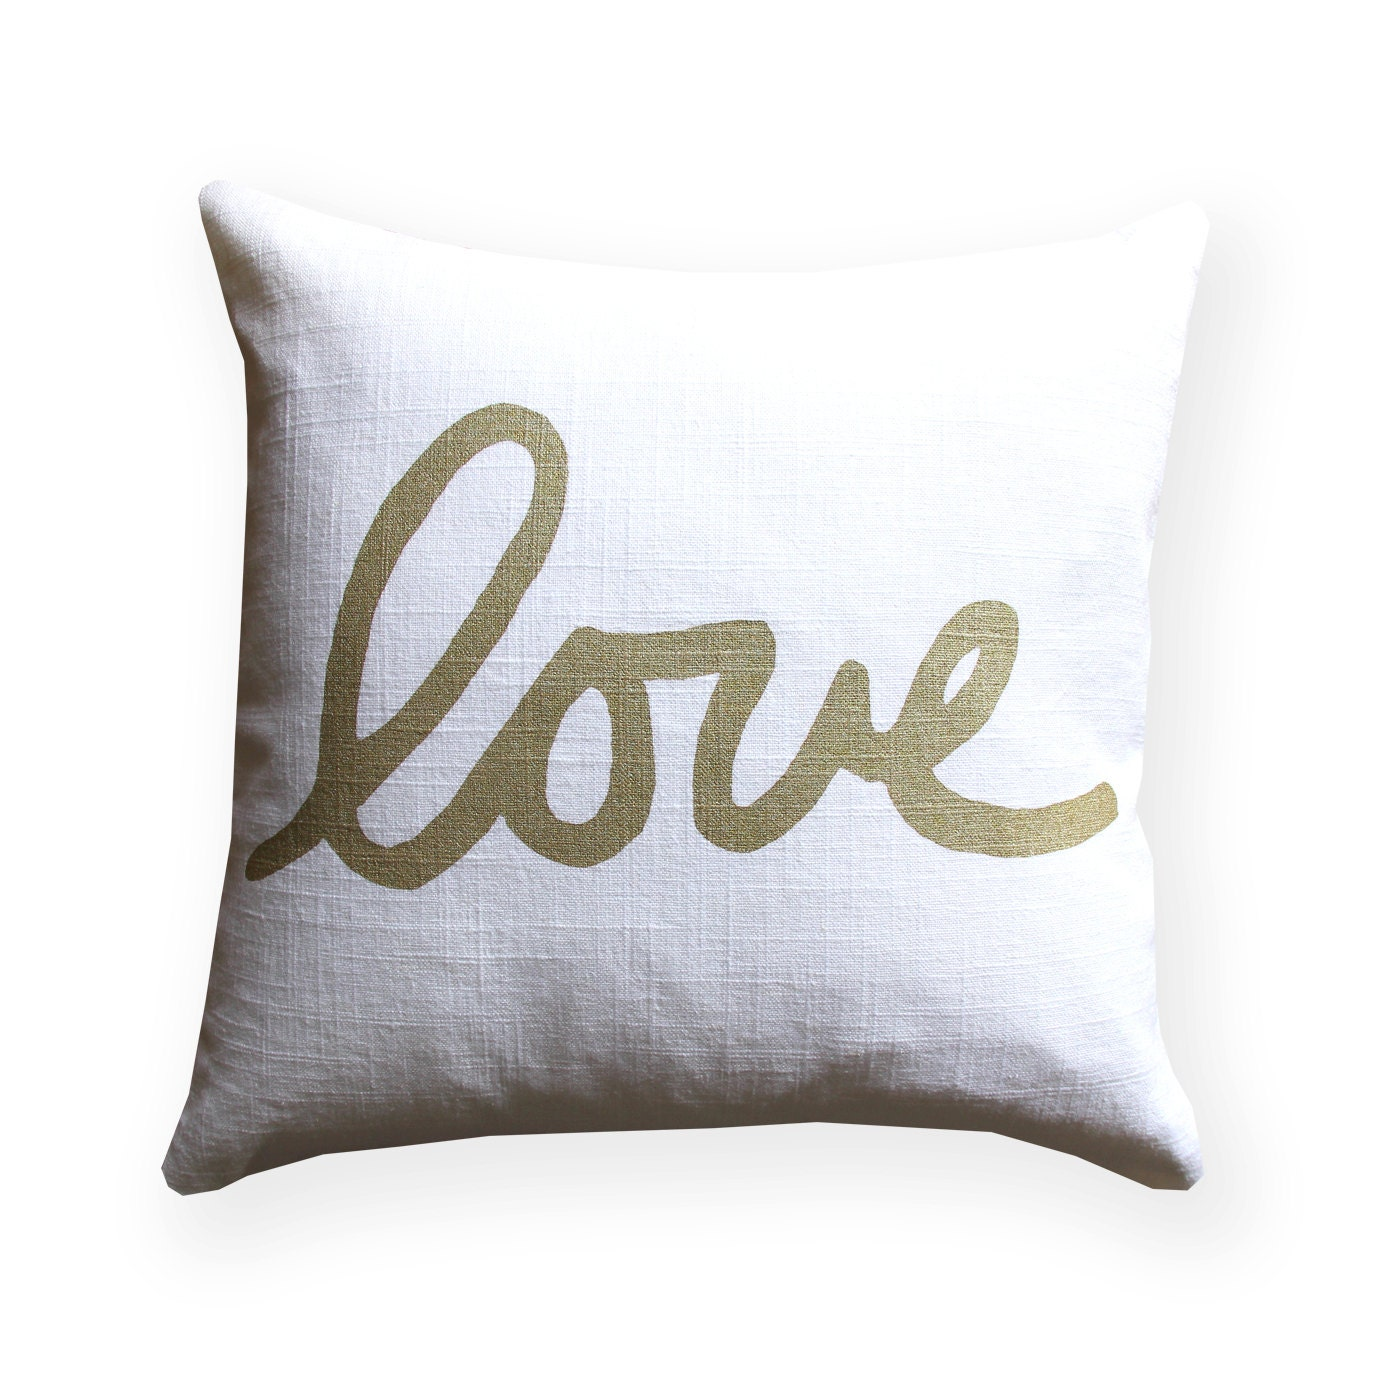 Metallic Gold and White Love Throw Pillow Square Love Pillow